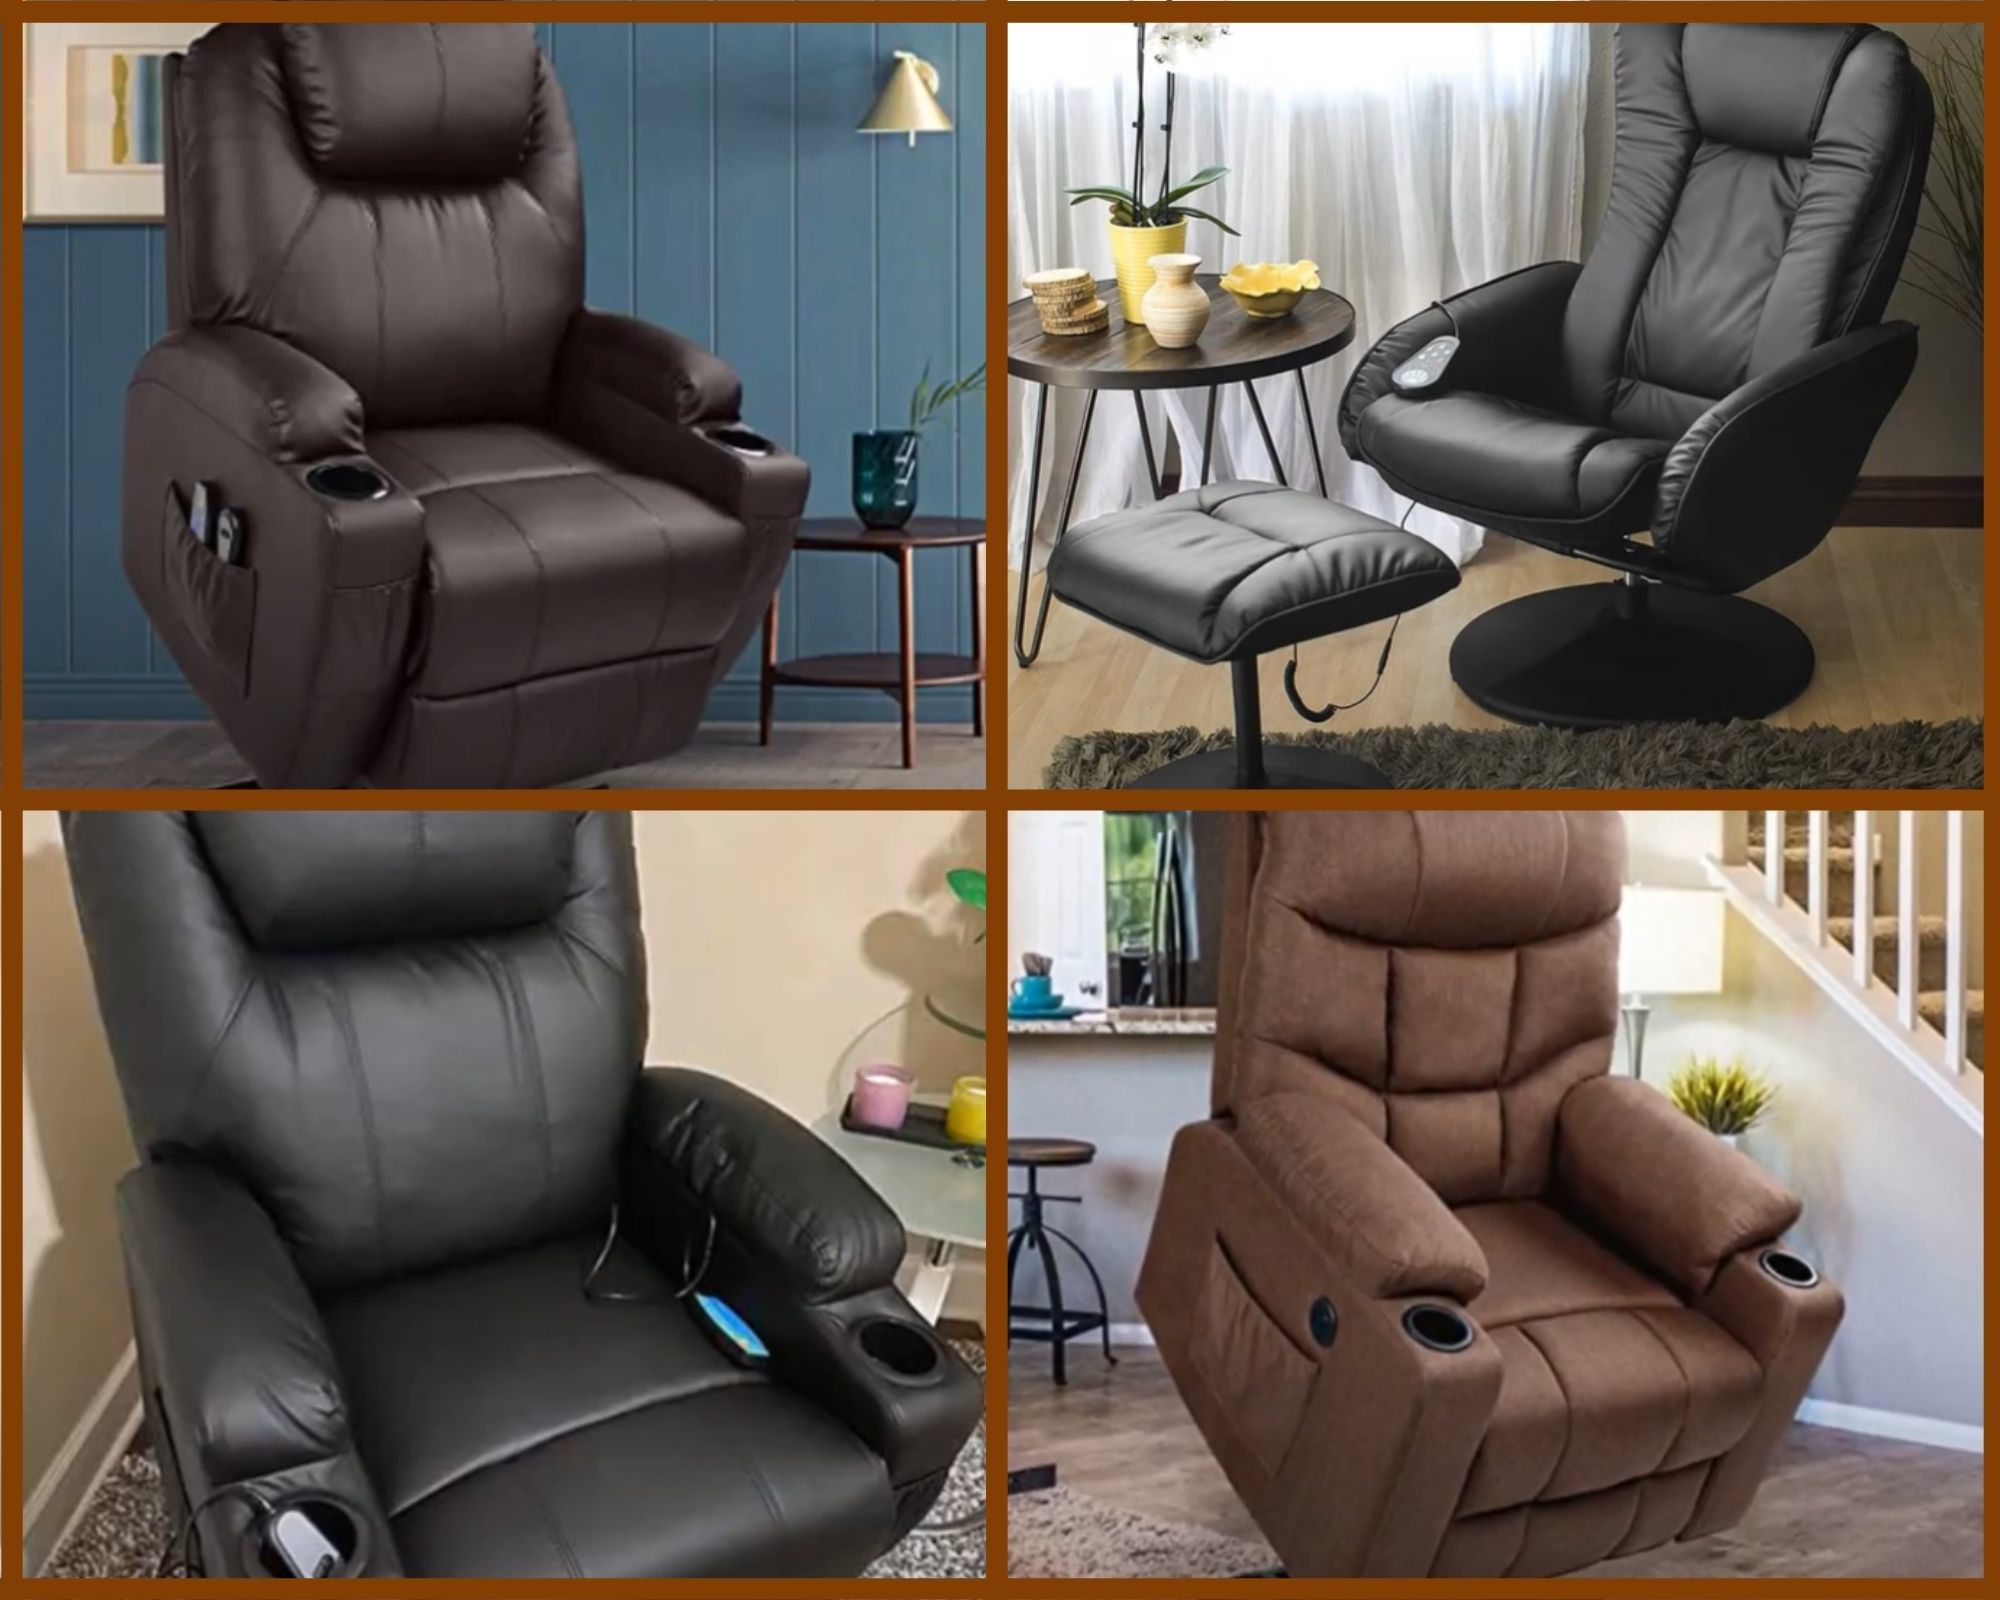 many types of common massage chairs